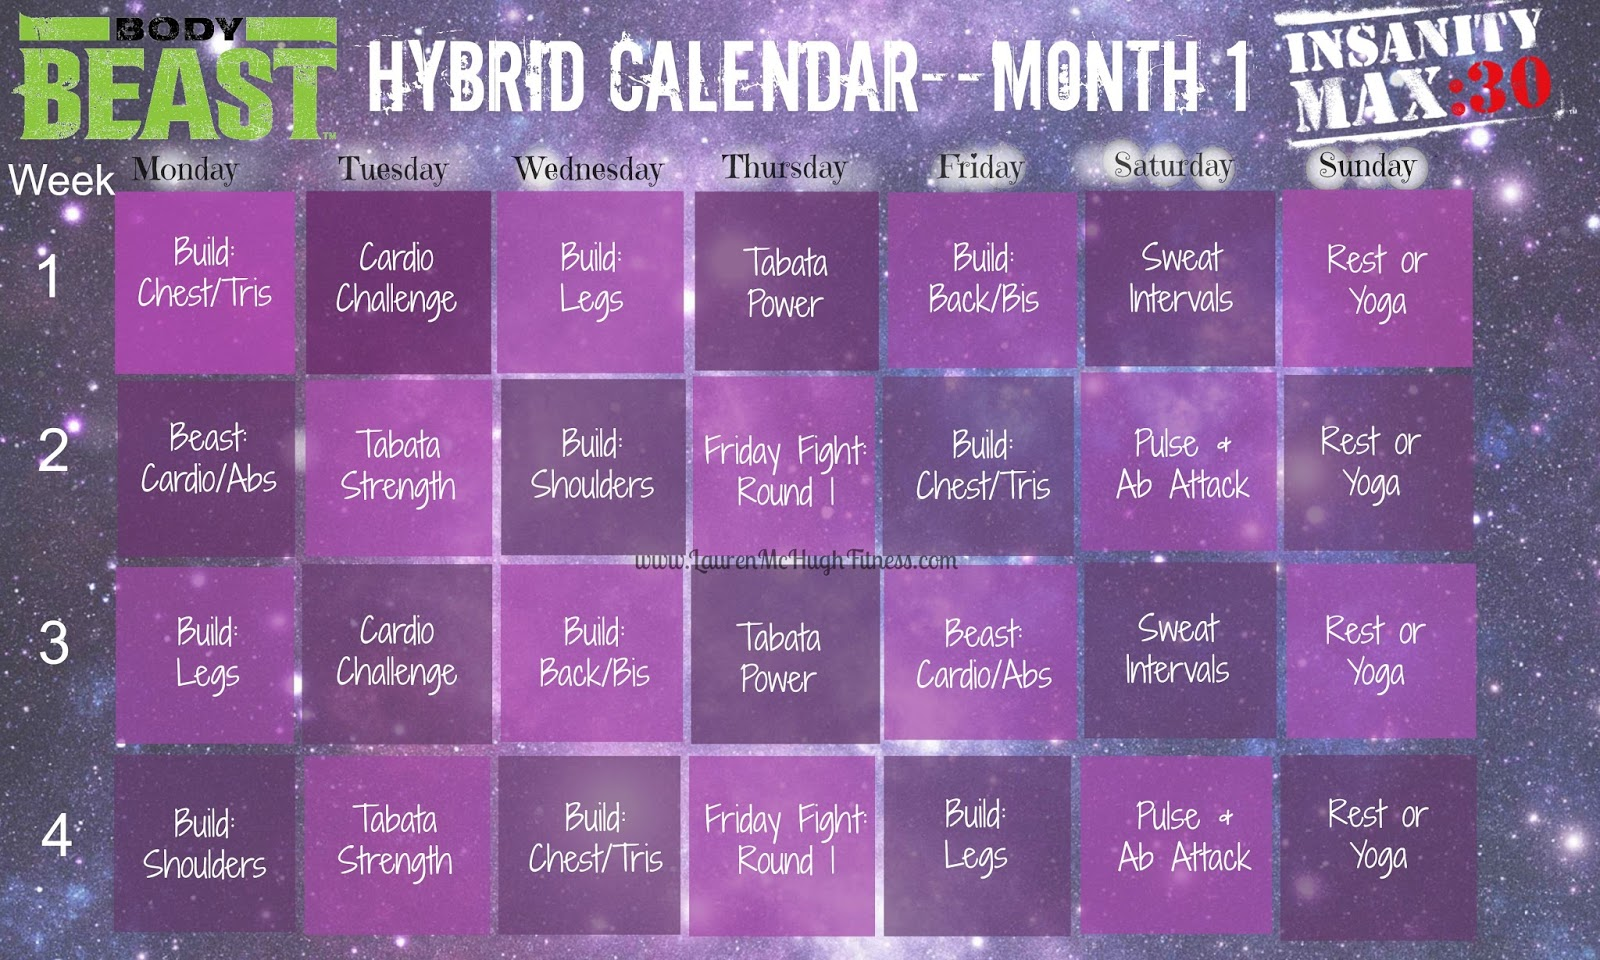 Insanity Max 30 Workout Calendar Month 2